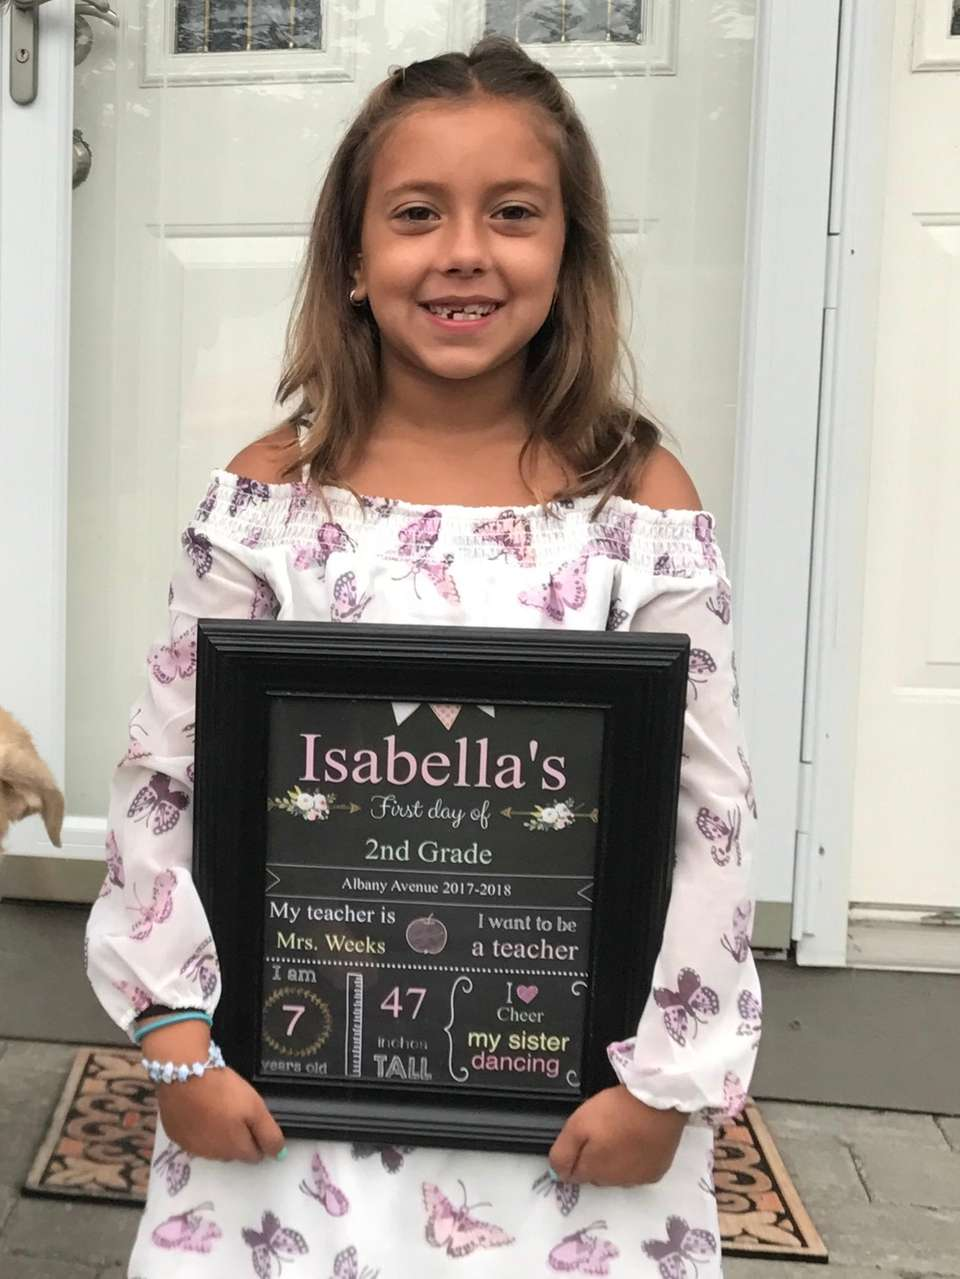 Isabella's first day of 2nd grade